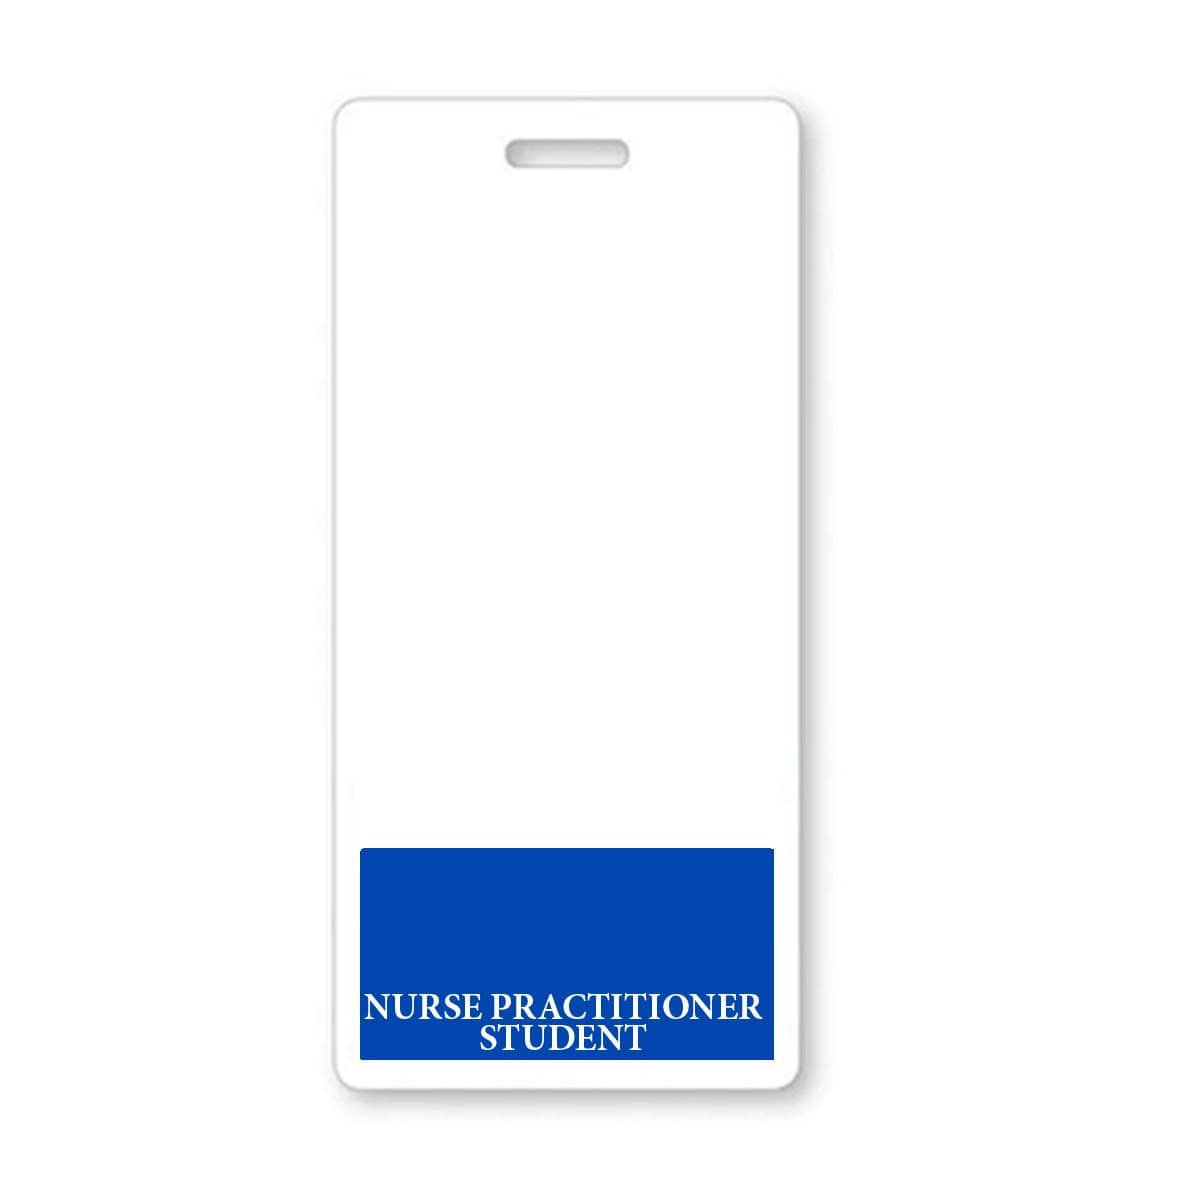 NURSE PRACTITIONER STUDENT Vertical Badge Buddy with Blue Border